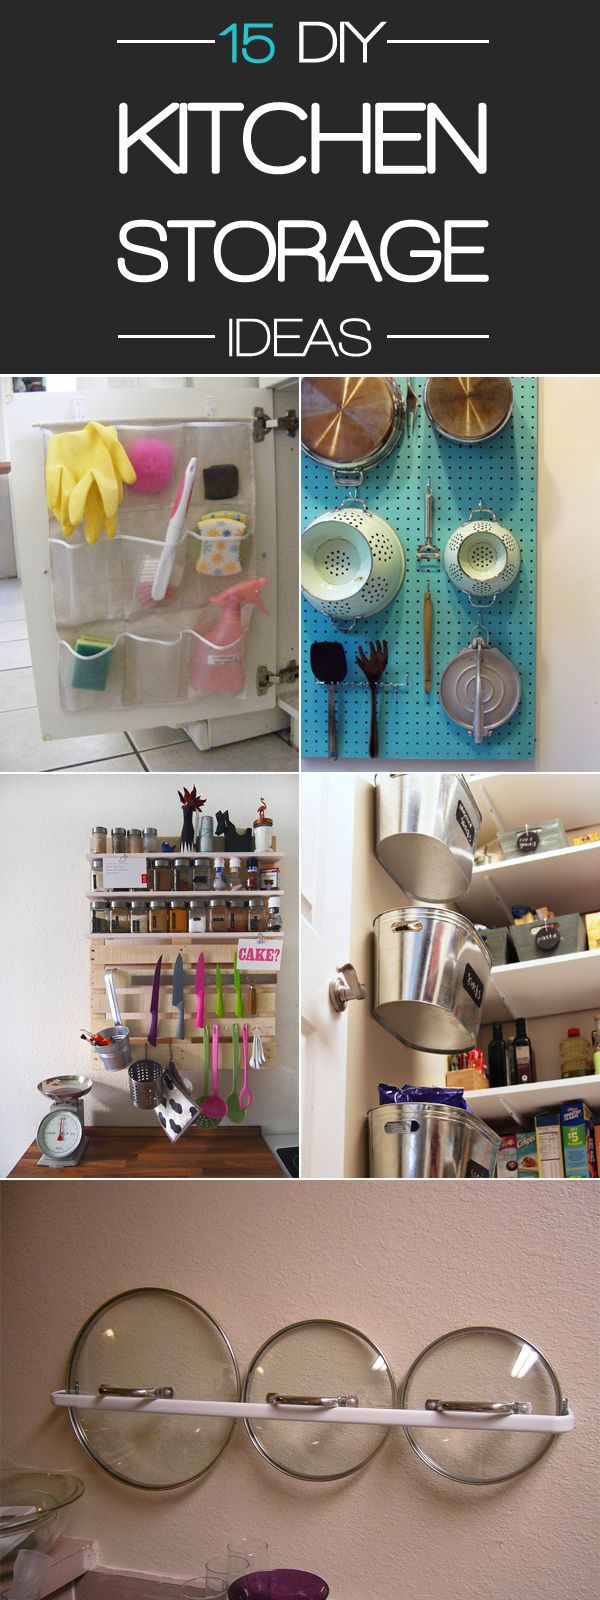 Best 25 cheap kitchen storage ideas ideas on pinterest for Cheap kitchen storage ideas